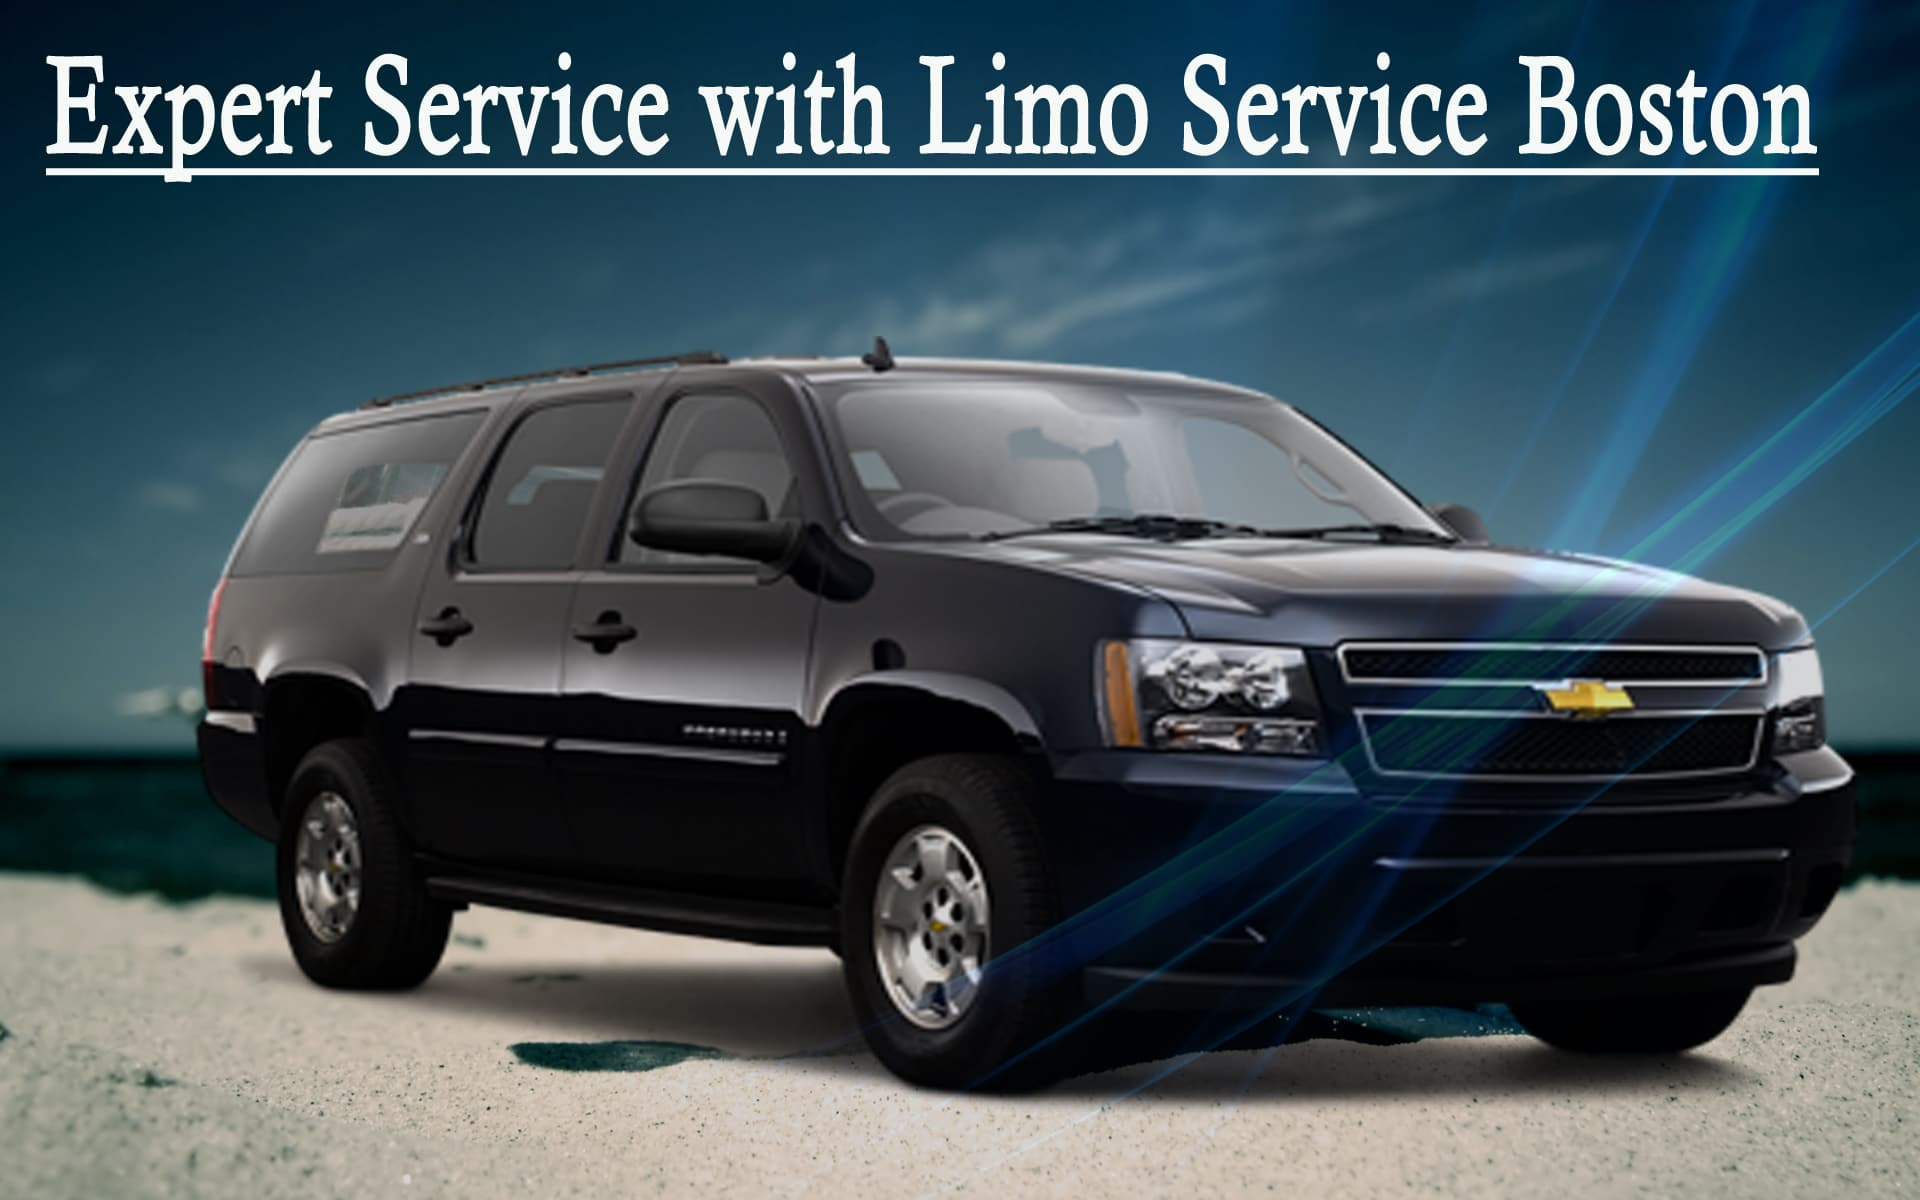 Expert Service with Limo Service Boston